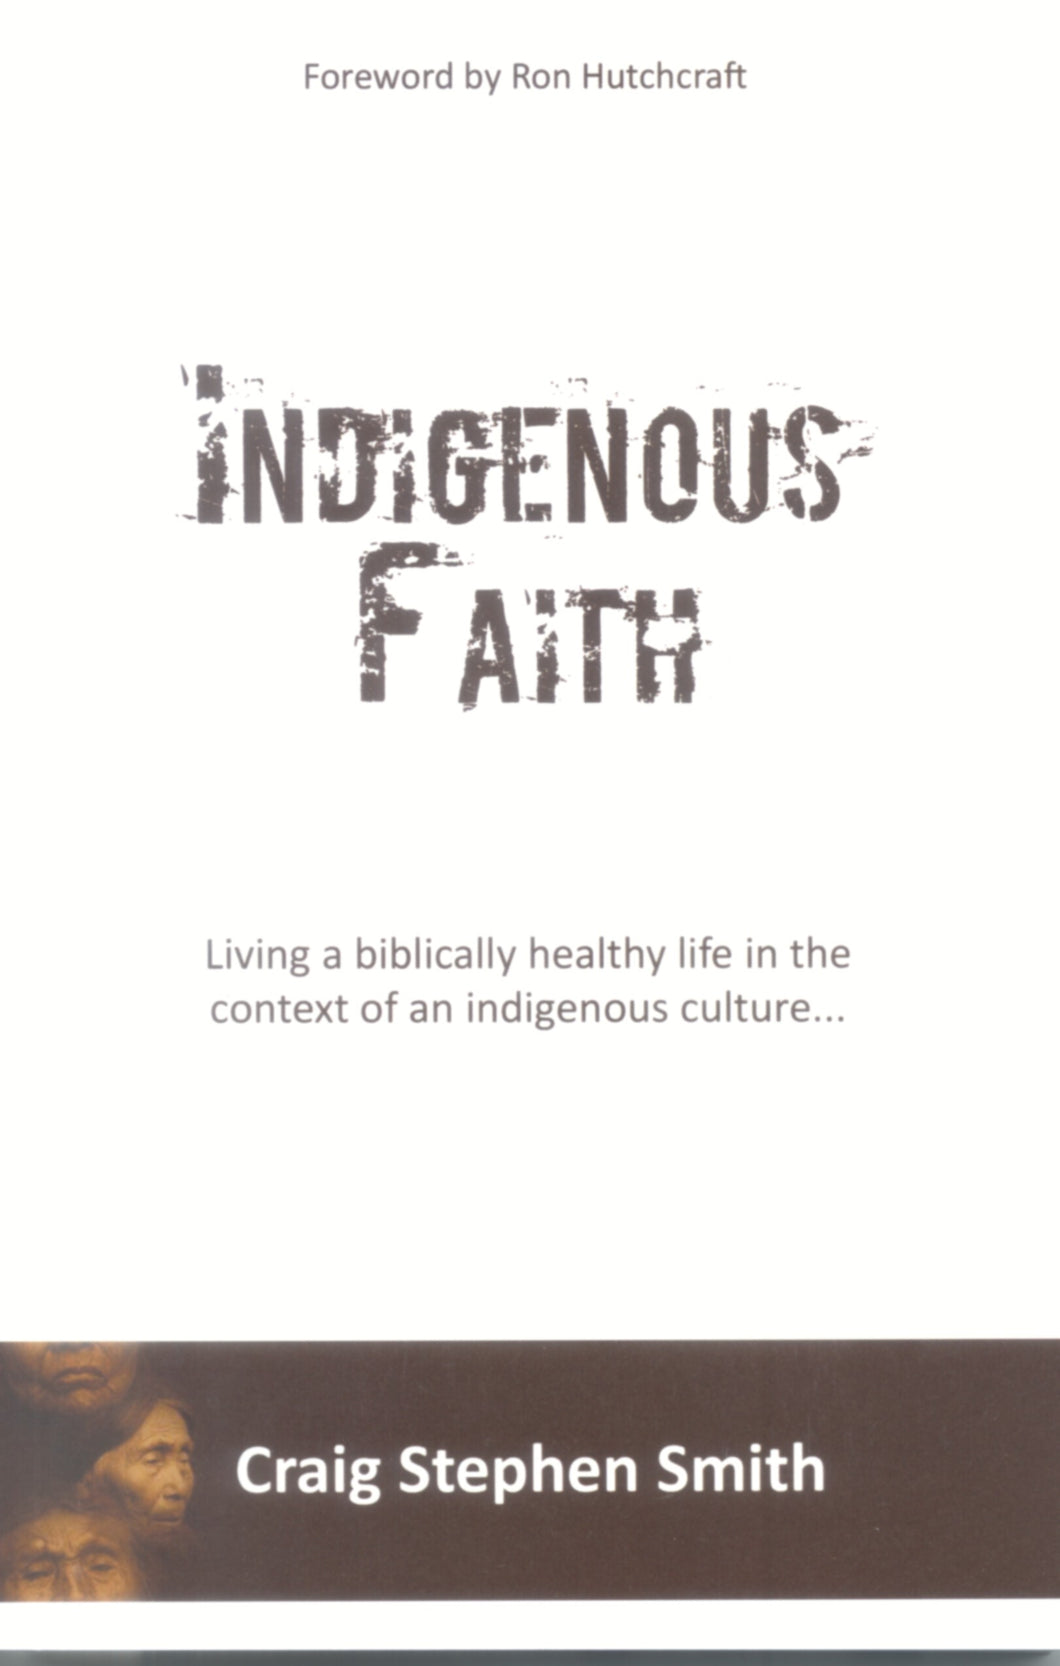 Indigenous Faith